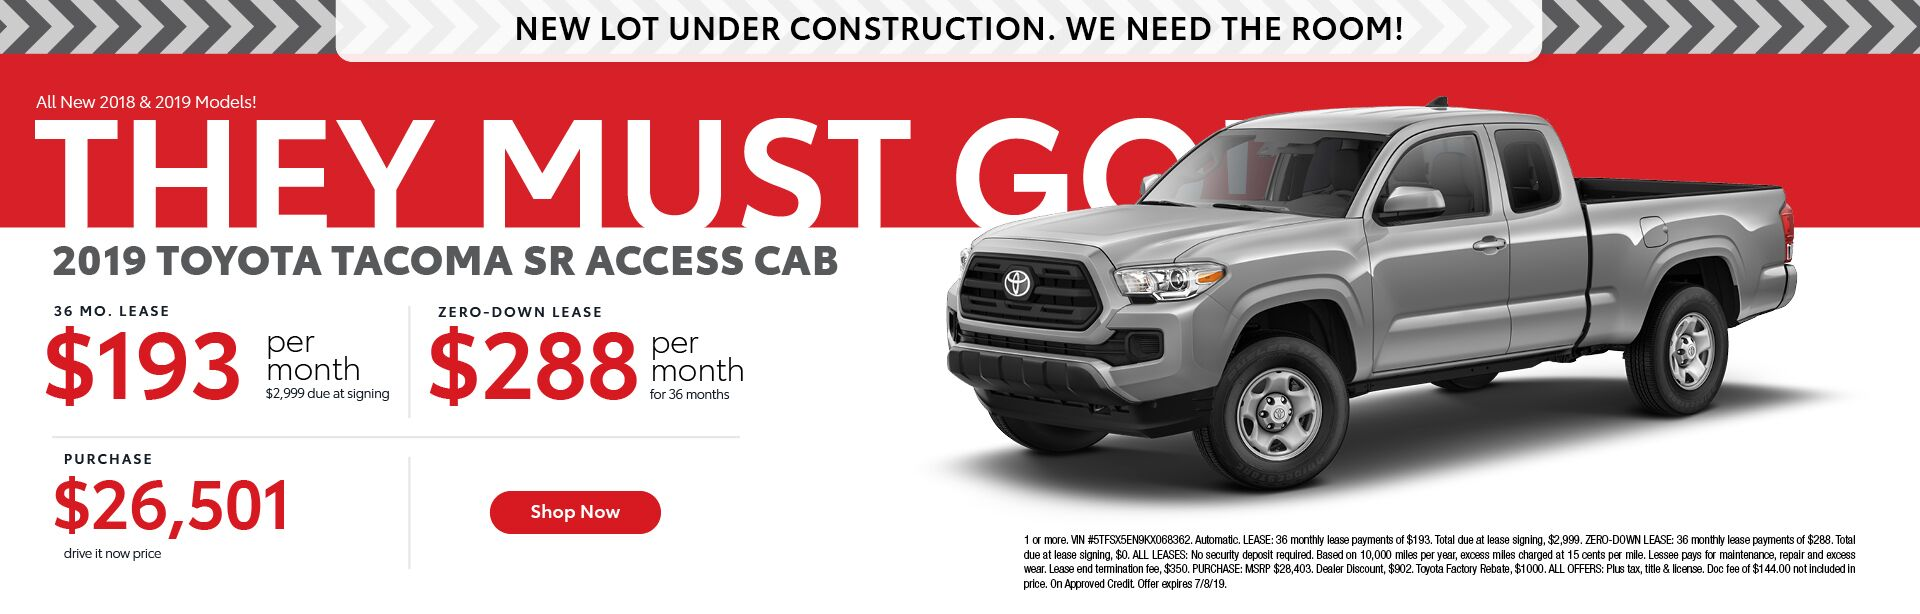 2019 Toyota Tacoma SR Access Cab - 36 month lease $193 per month $2,999 due at signing - zero-down lease $288 per month for 36 months - purchase price $26,501